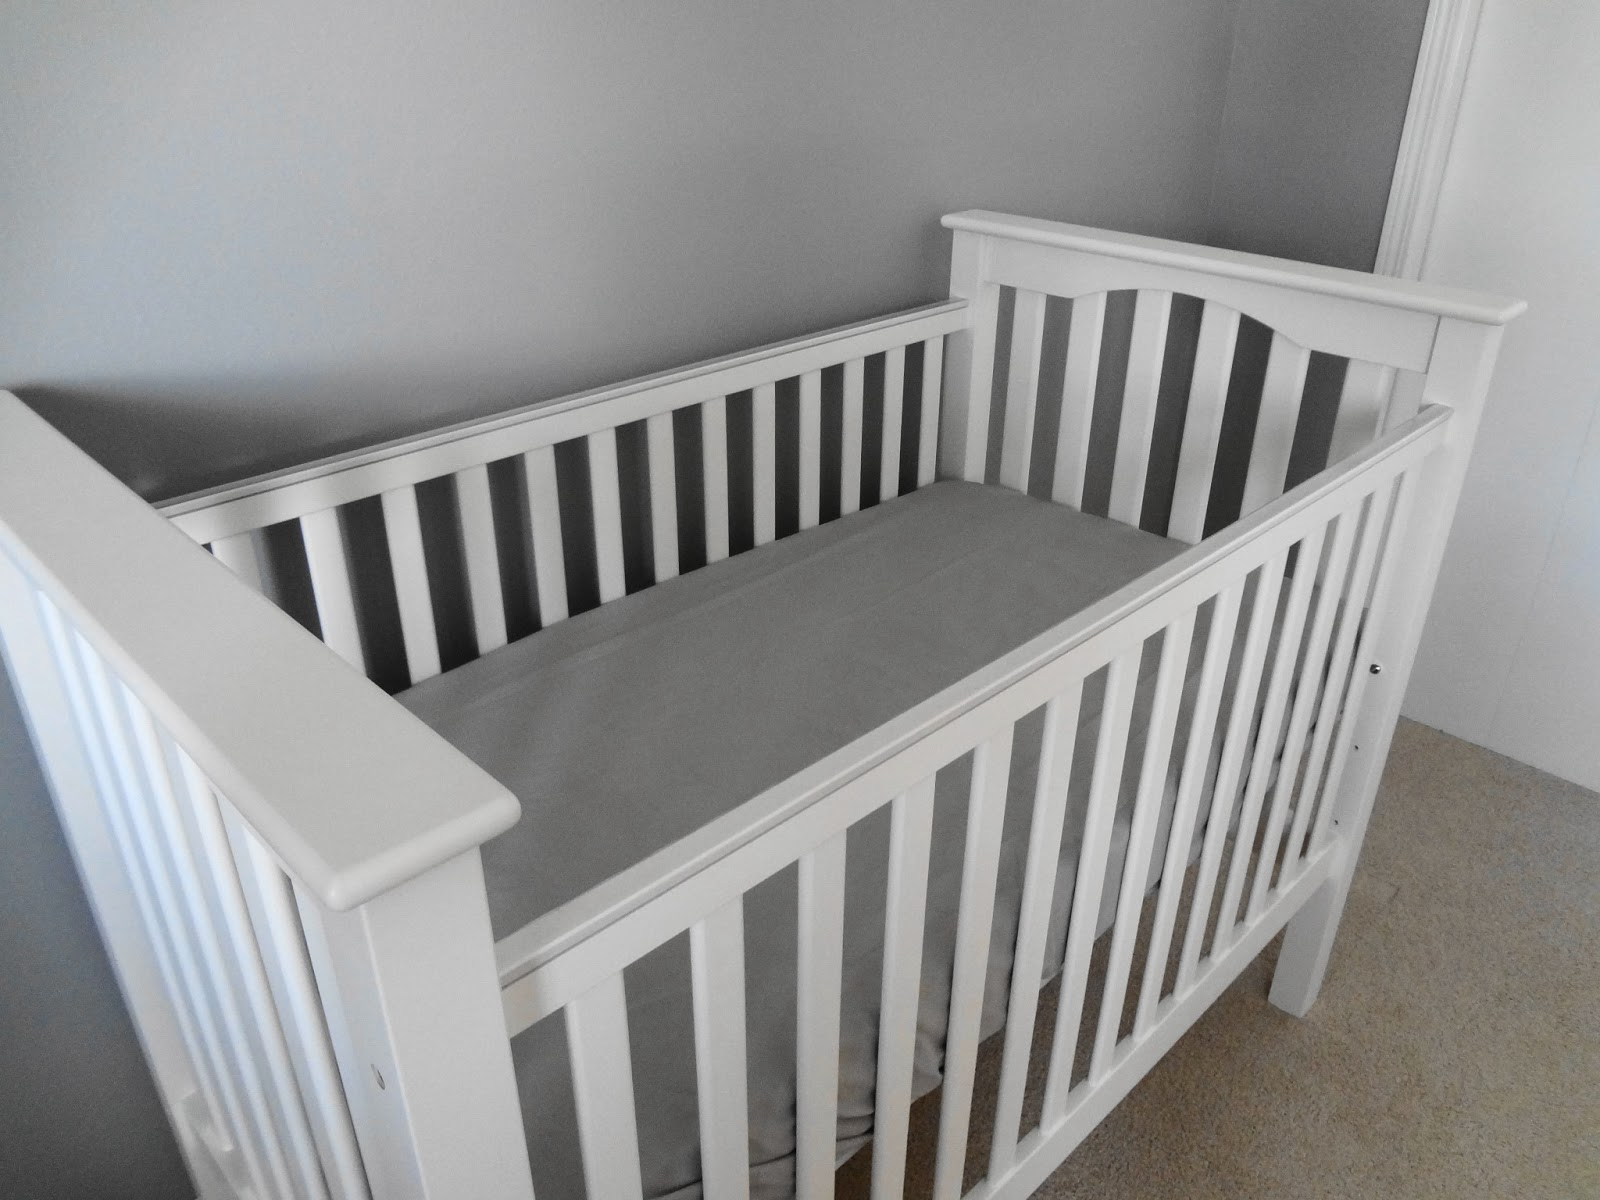 Crib heights for babies - She Is Simple White Sturdy And The Perfect Height Here S A Trifecta Of Angles How Bad Am I Going To Be When There S A Baby In There If I Can T Stop